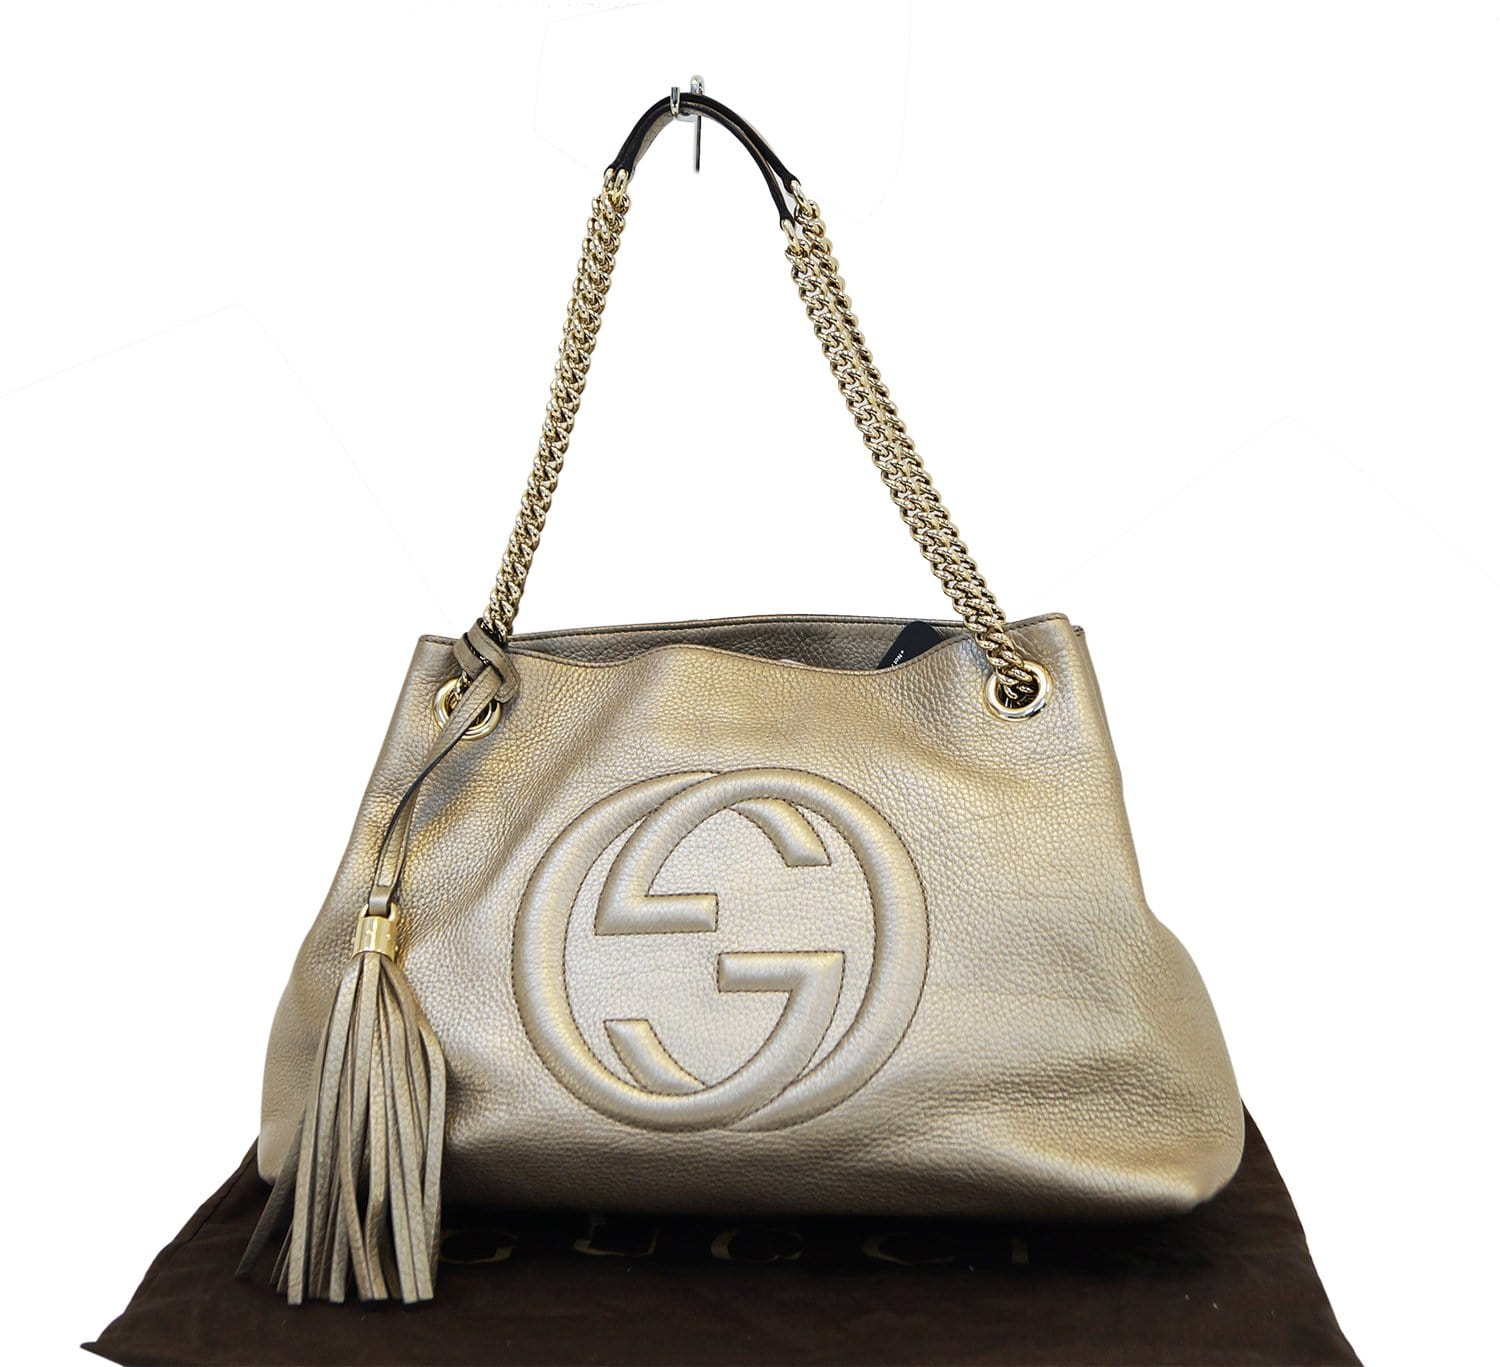 0a5b30809444 Authentic GUCCI Gold Pebbled Leather Soho Chain Tote Bag E3184